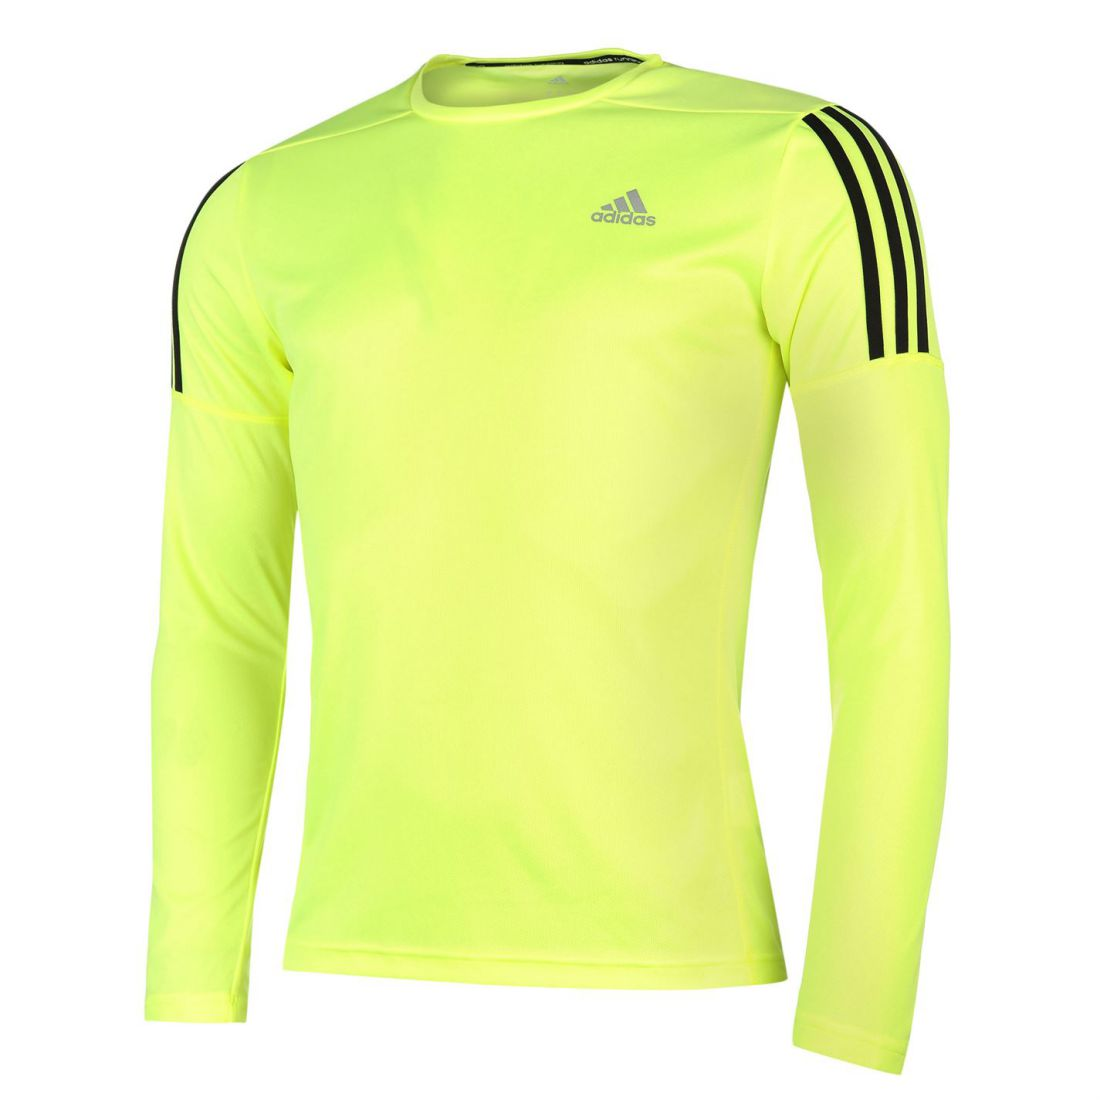 773914c689c787 adidas Mens Questar Long Sleeve Running Top Crew Neck Sports Clothing